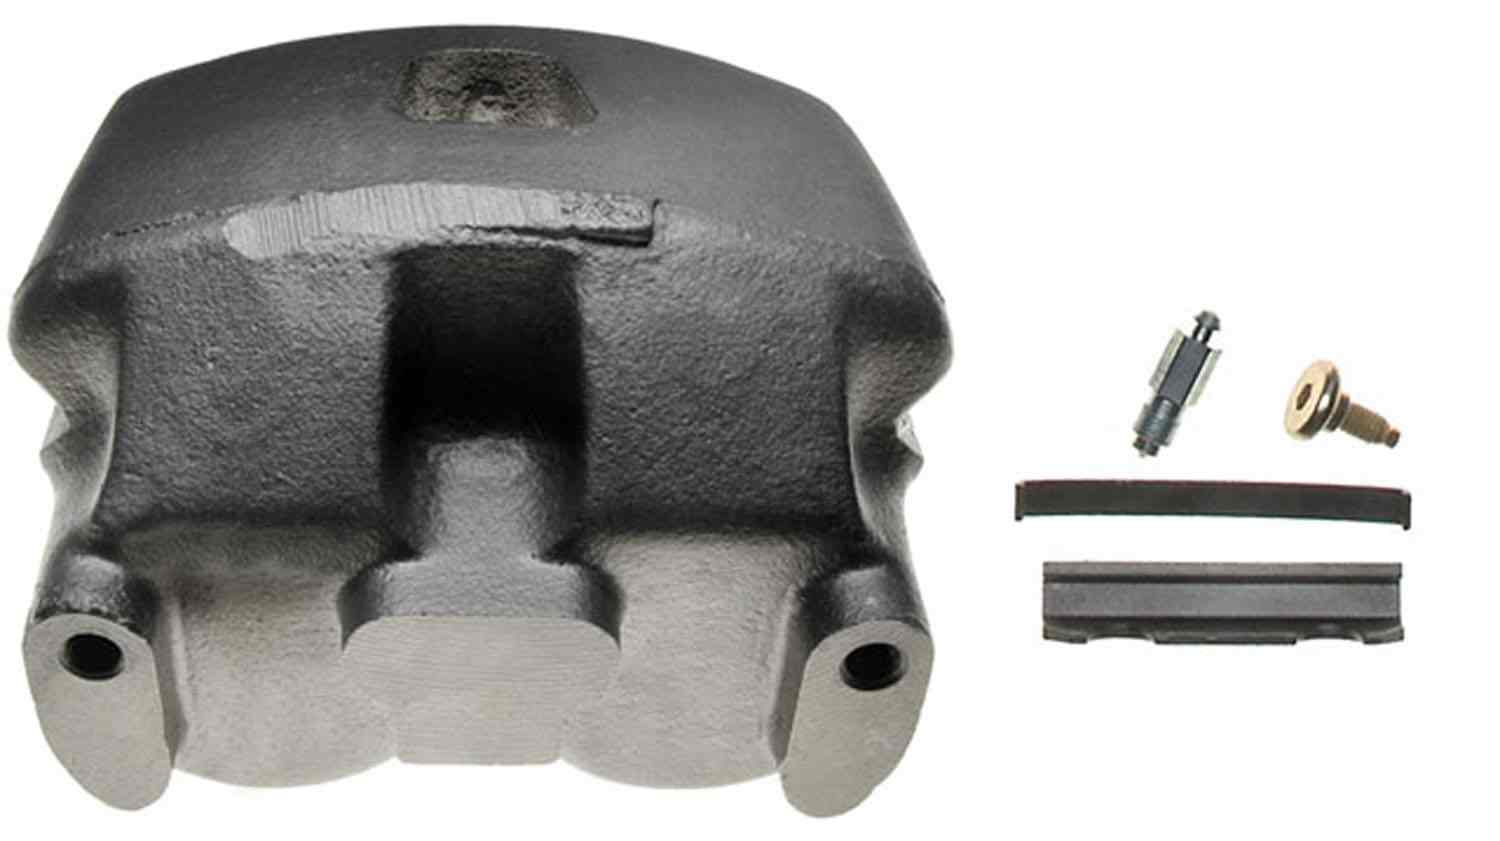 ACDELCO PROFESSIONAL BRAKES - Remanufactured Friction Ready Non-Coated - ADU 18FR1330